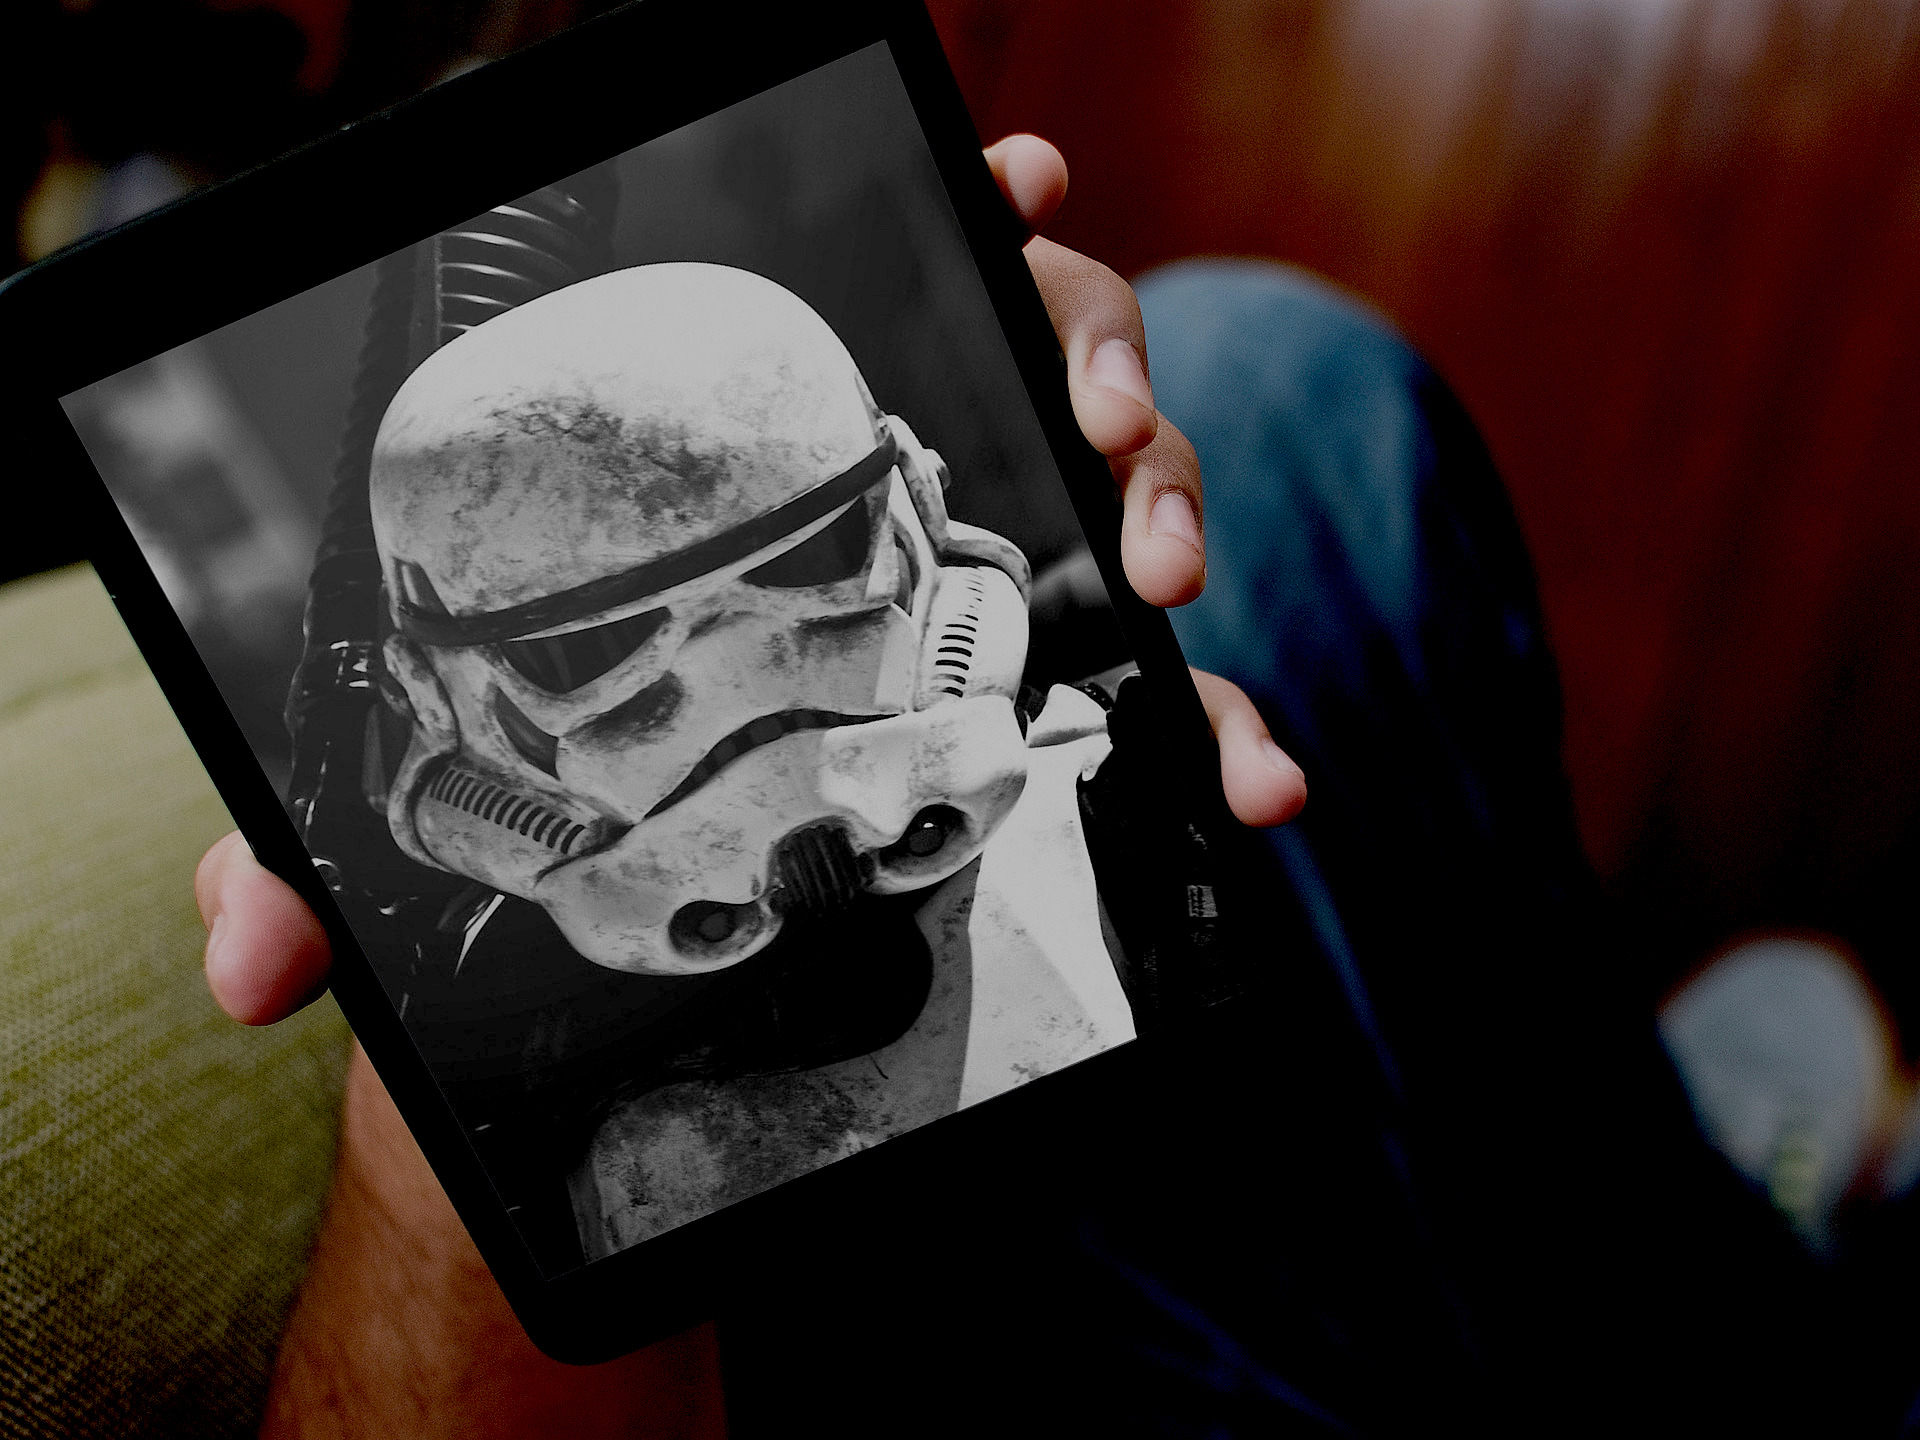 Star Wars Wallpapers For IPhone And IPad